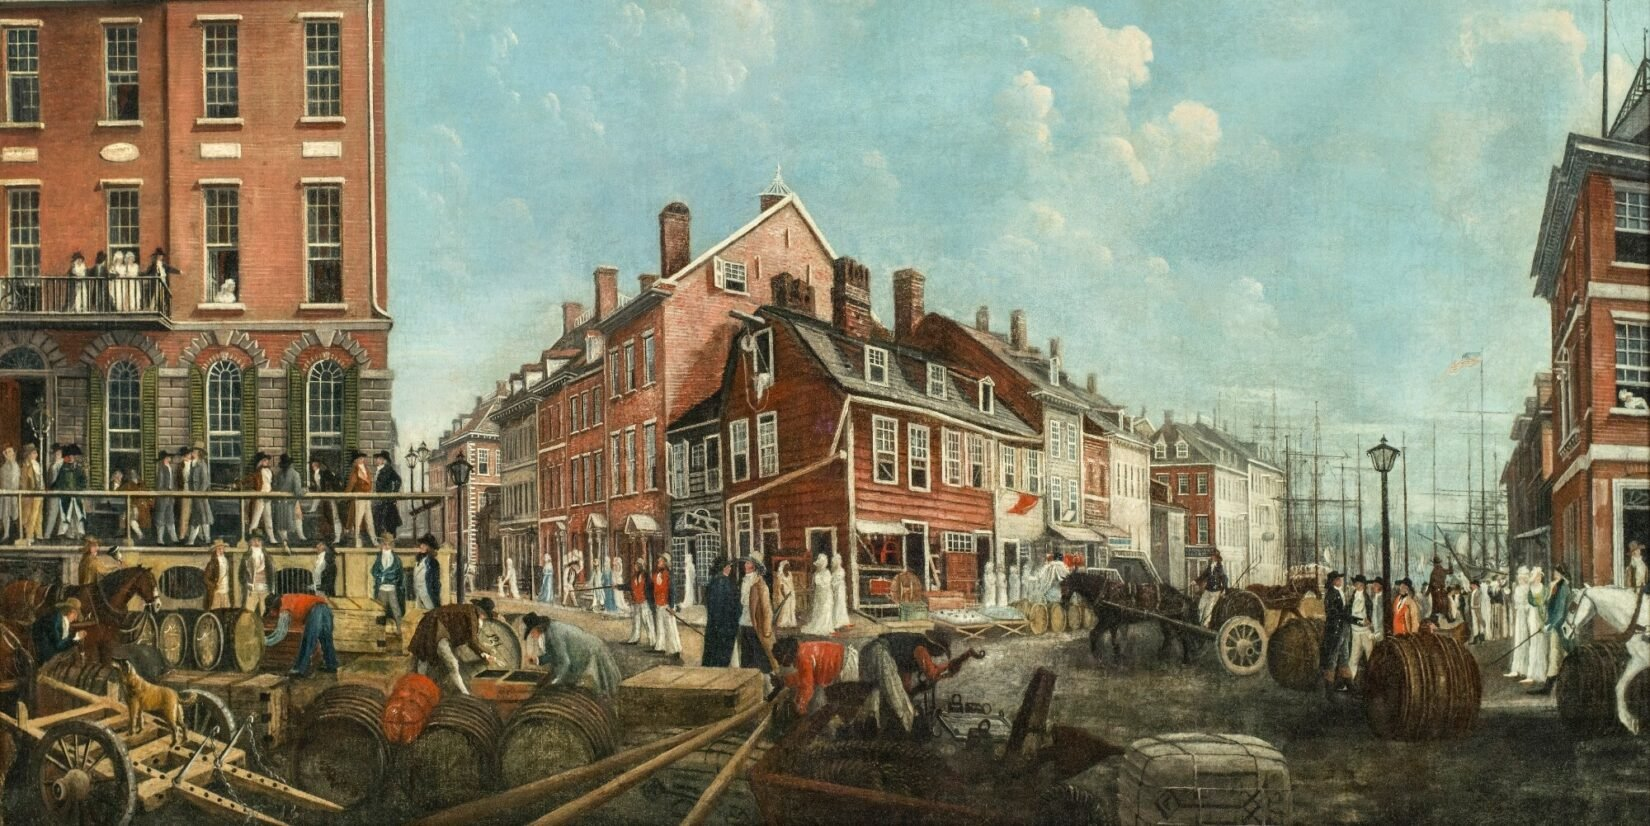 The painting shows a bustling intersection of late 18th-century New York.